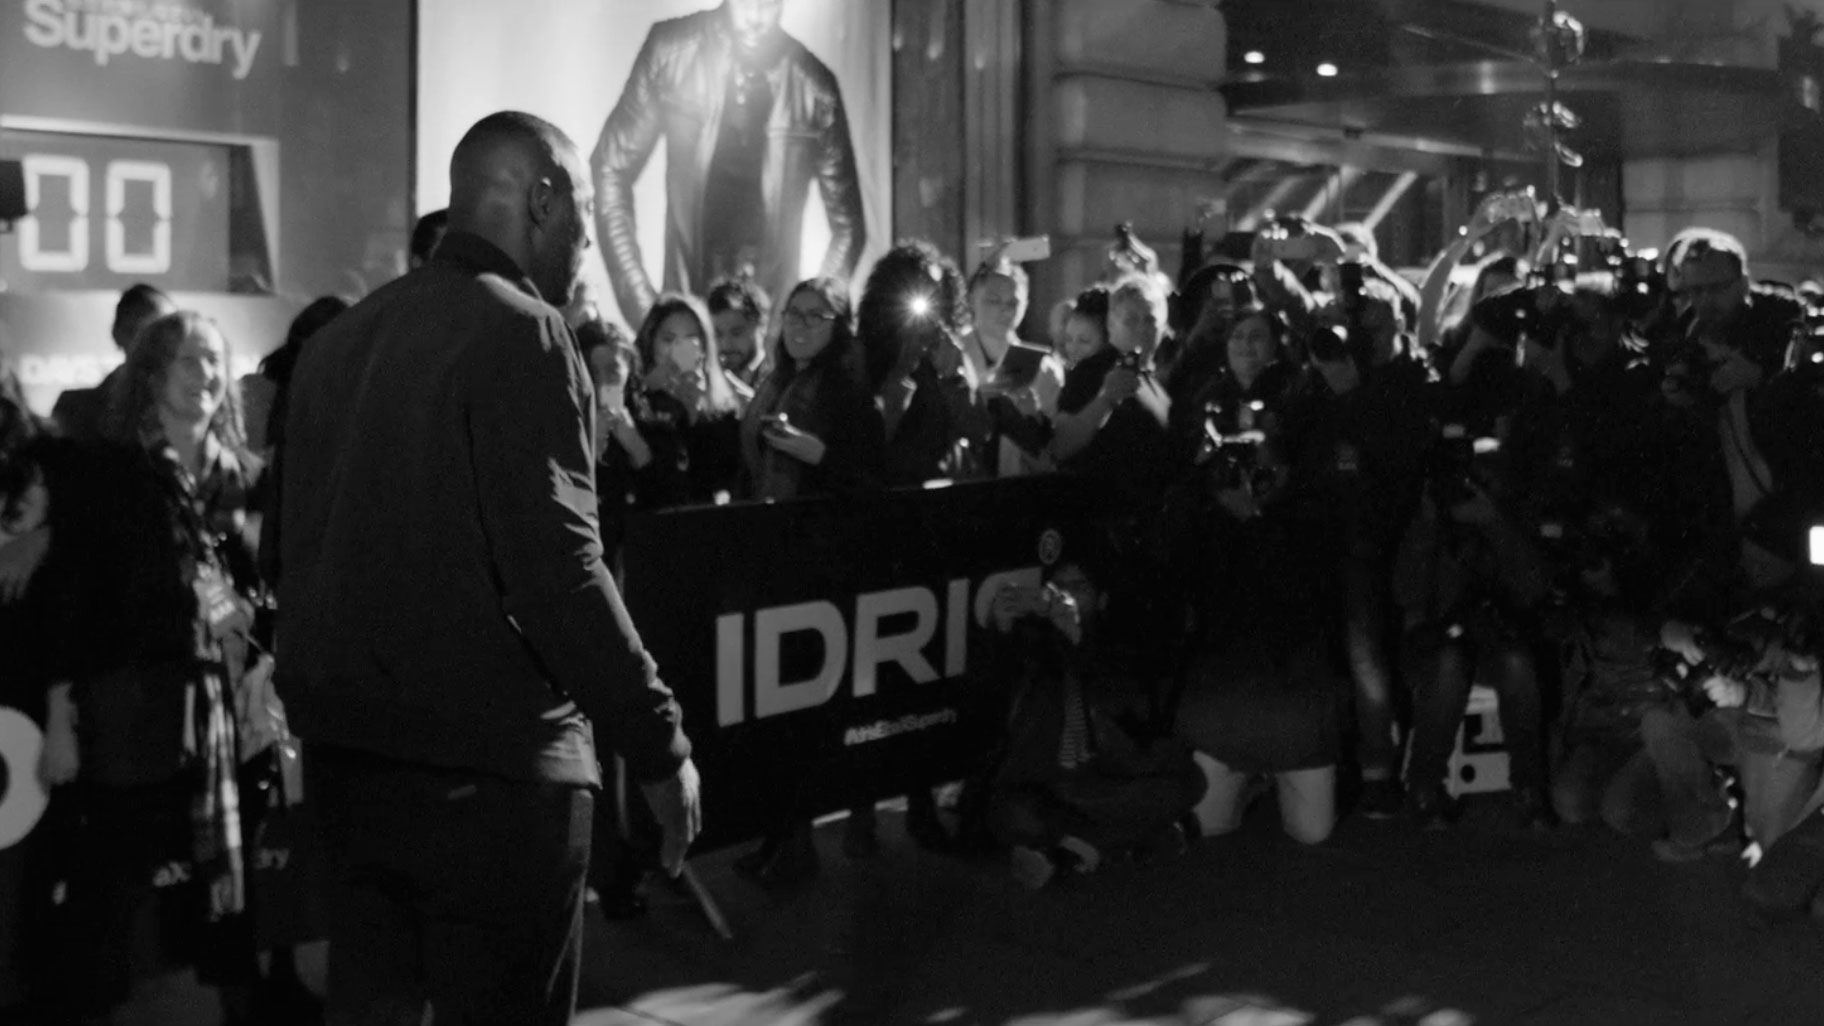 Incontournable: lancement de la collection Idris Elba + Superdry